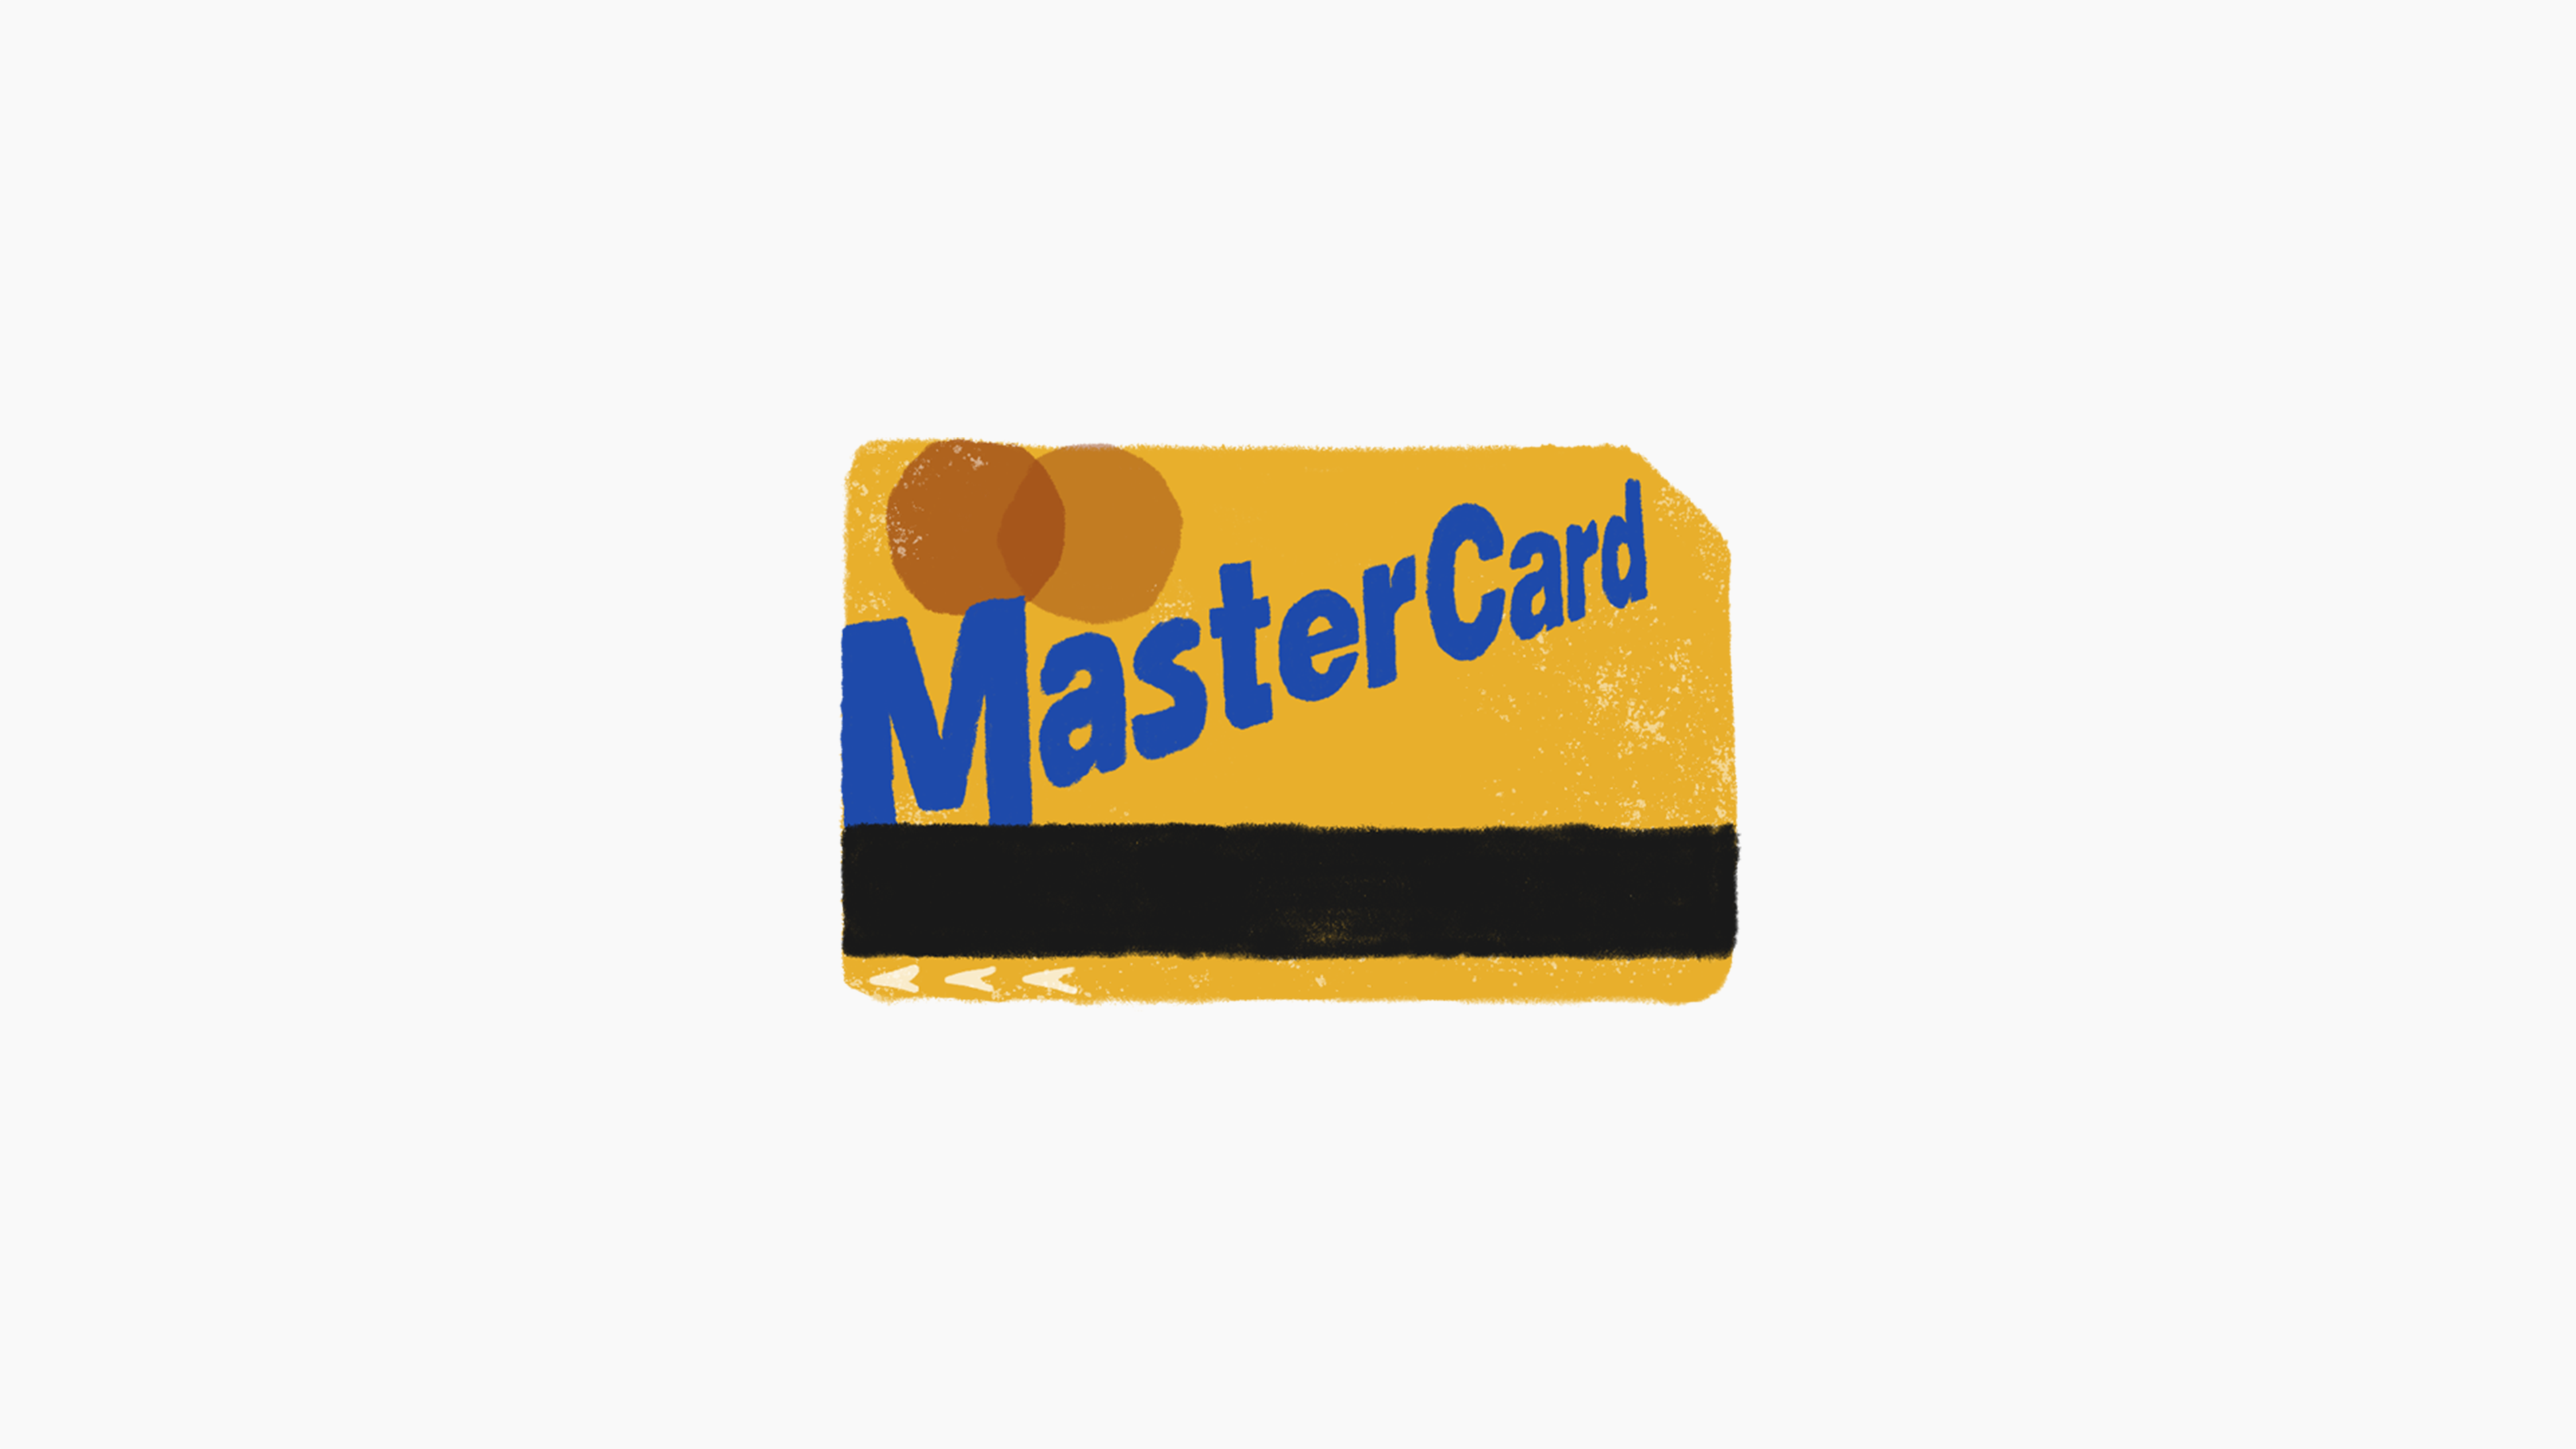 How much free NYC subway rides will cost Mastercard — Quartz